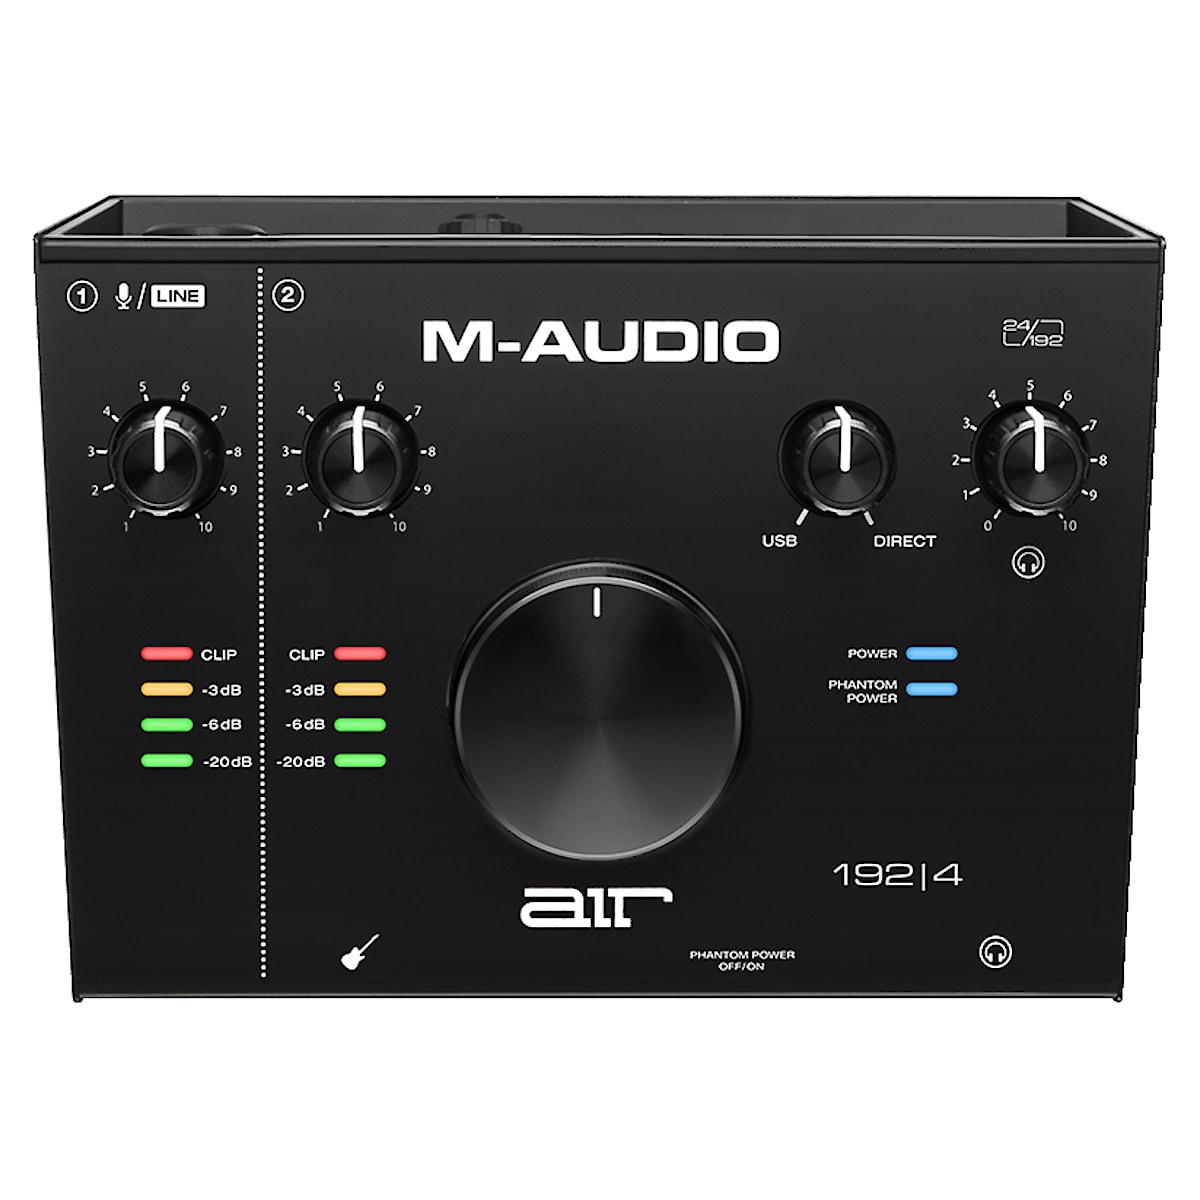 M-Audio AIR 192|4 lydkort